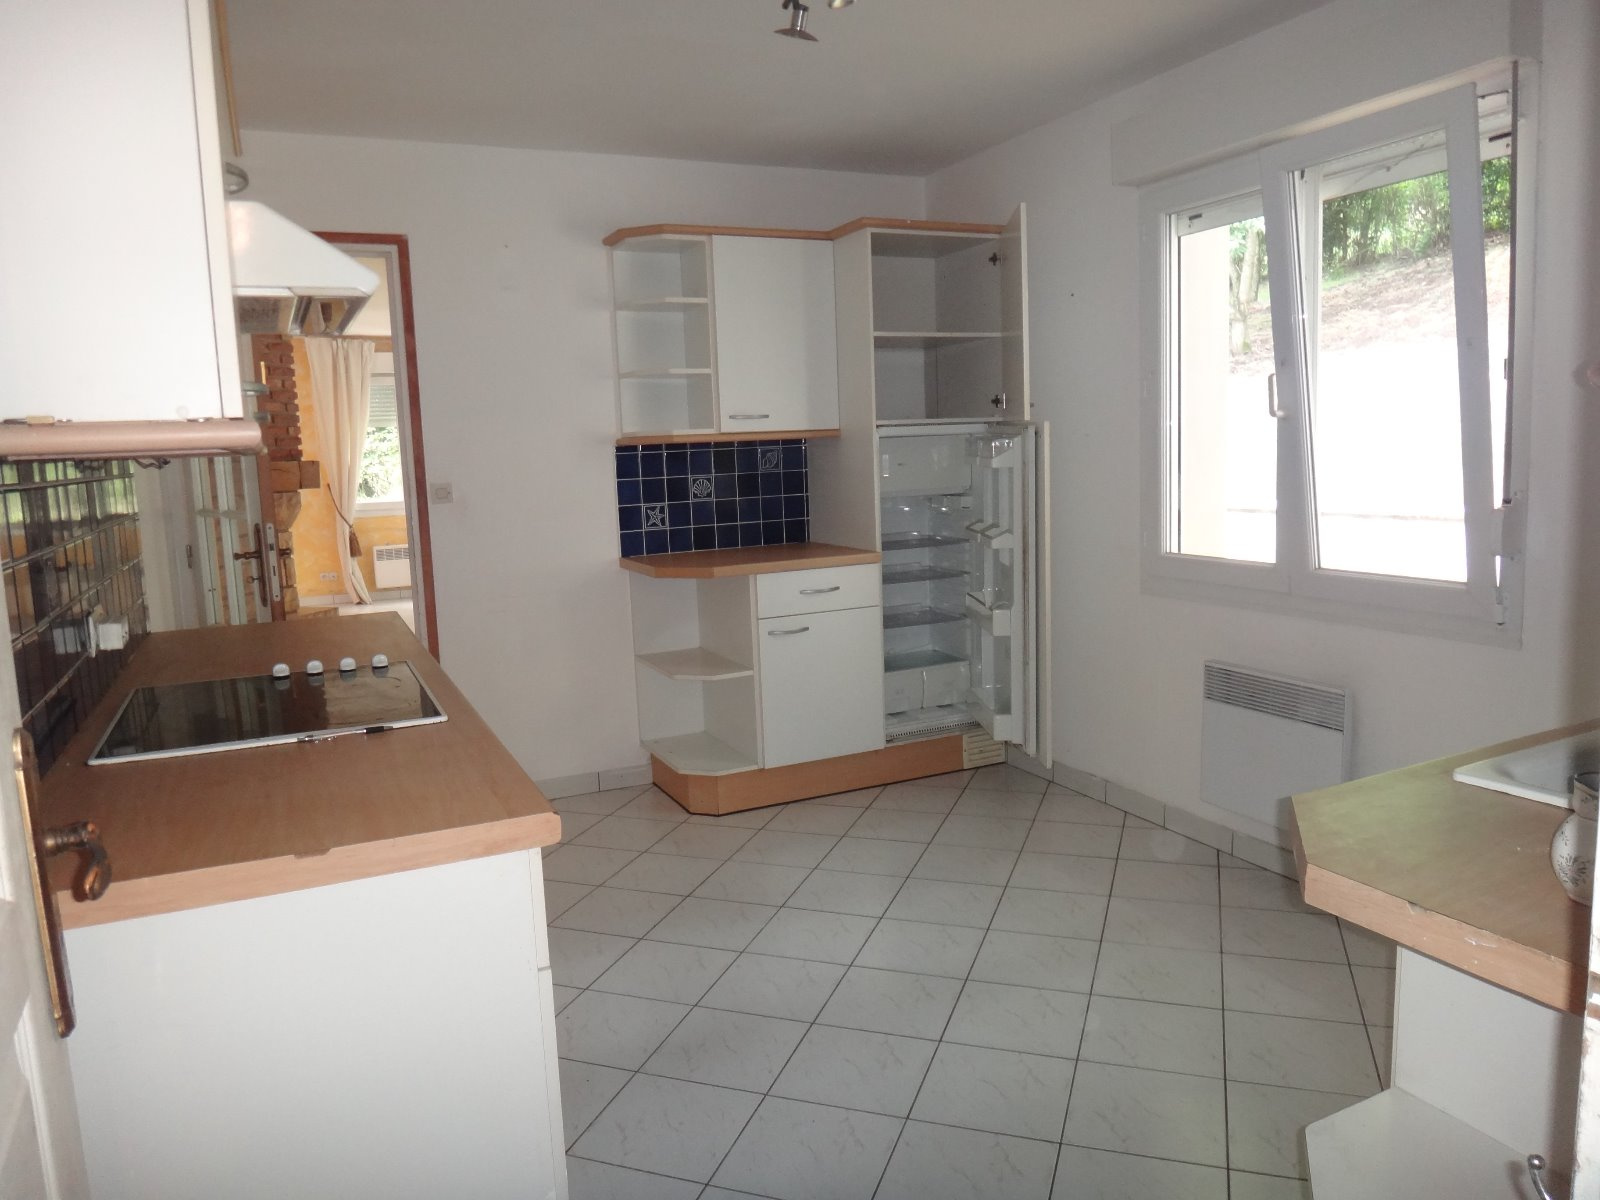 Vente pavillon r cent vall e de la cr quoise for Garage 2000 montreuil